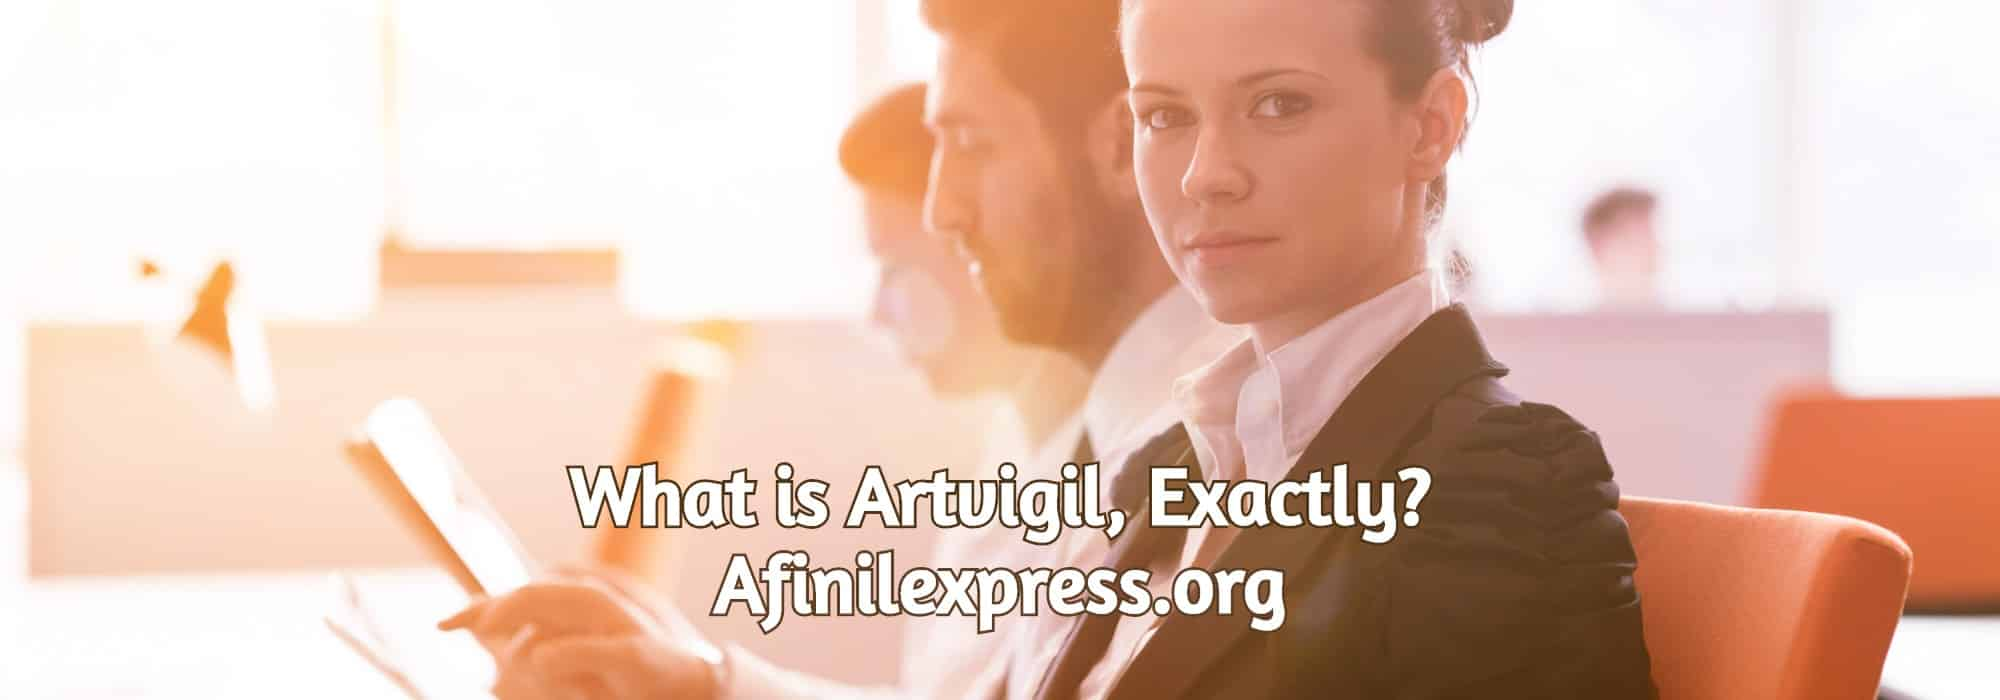 What is Artvigil, Exactly?